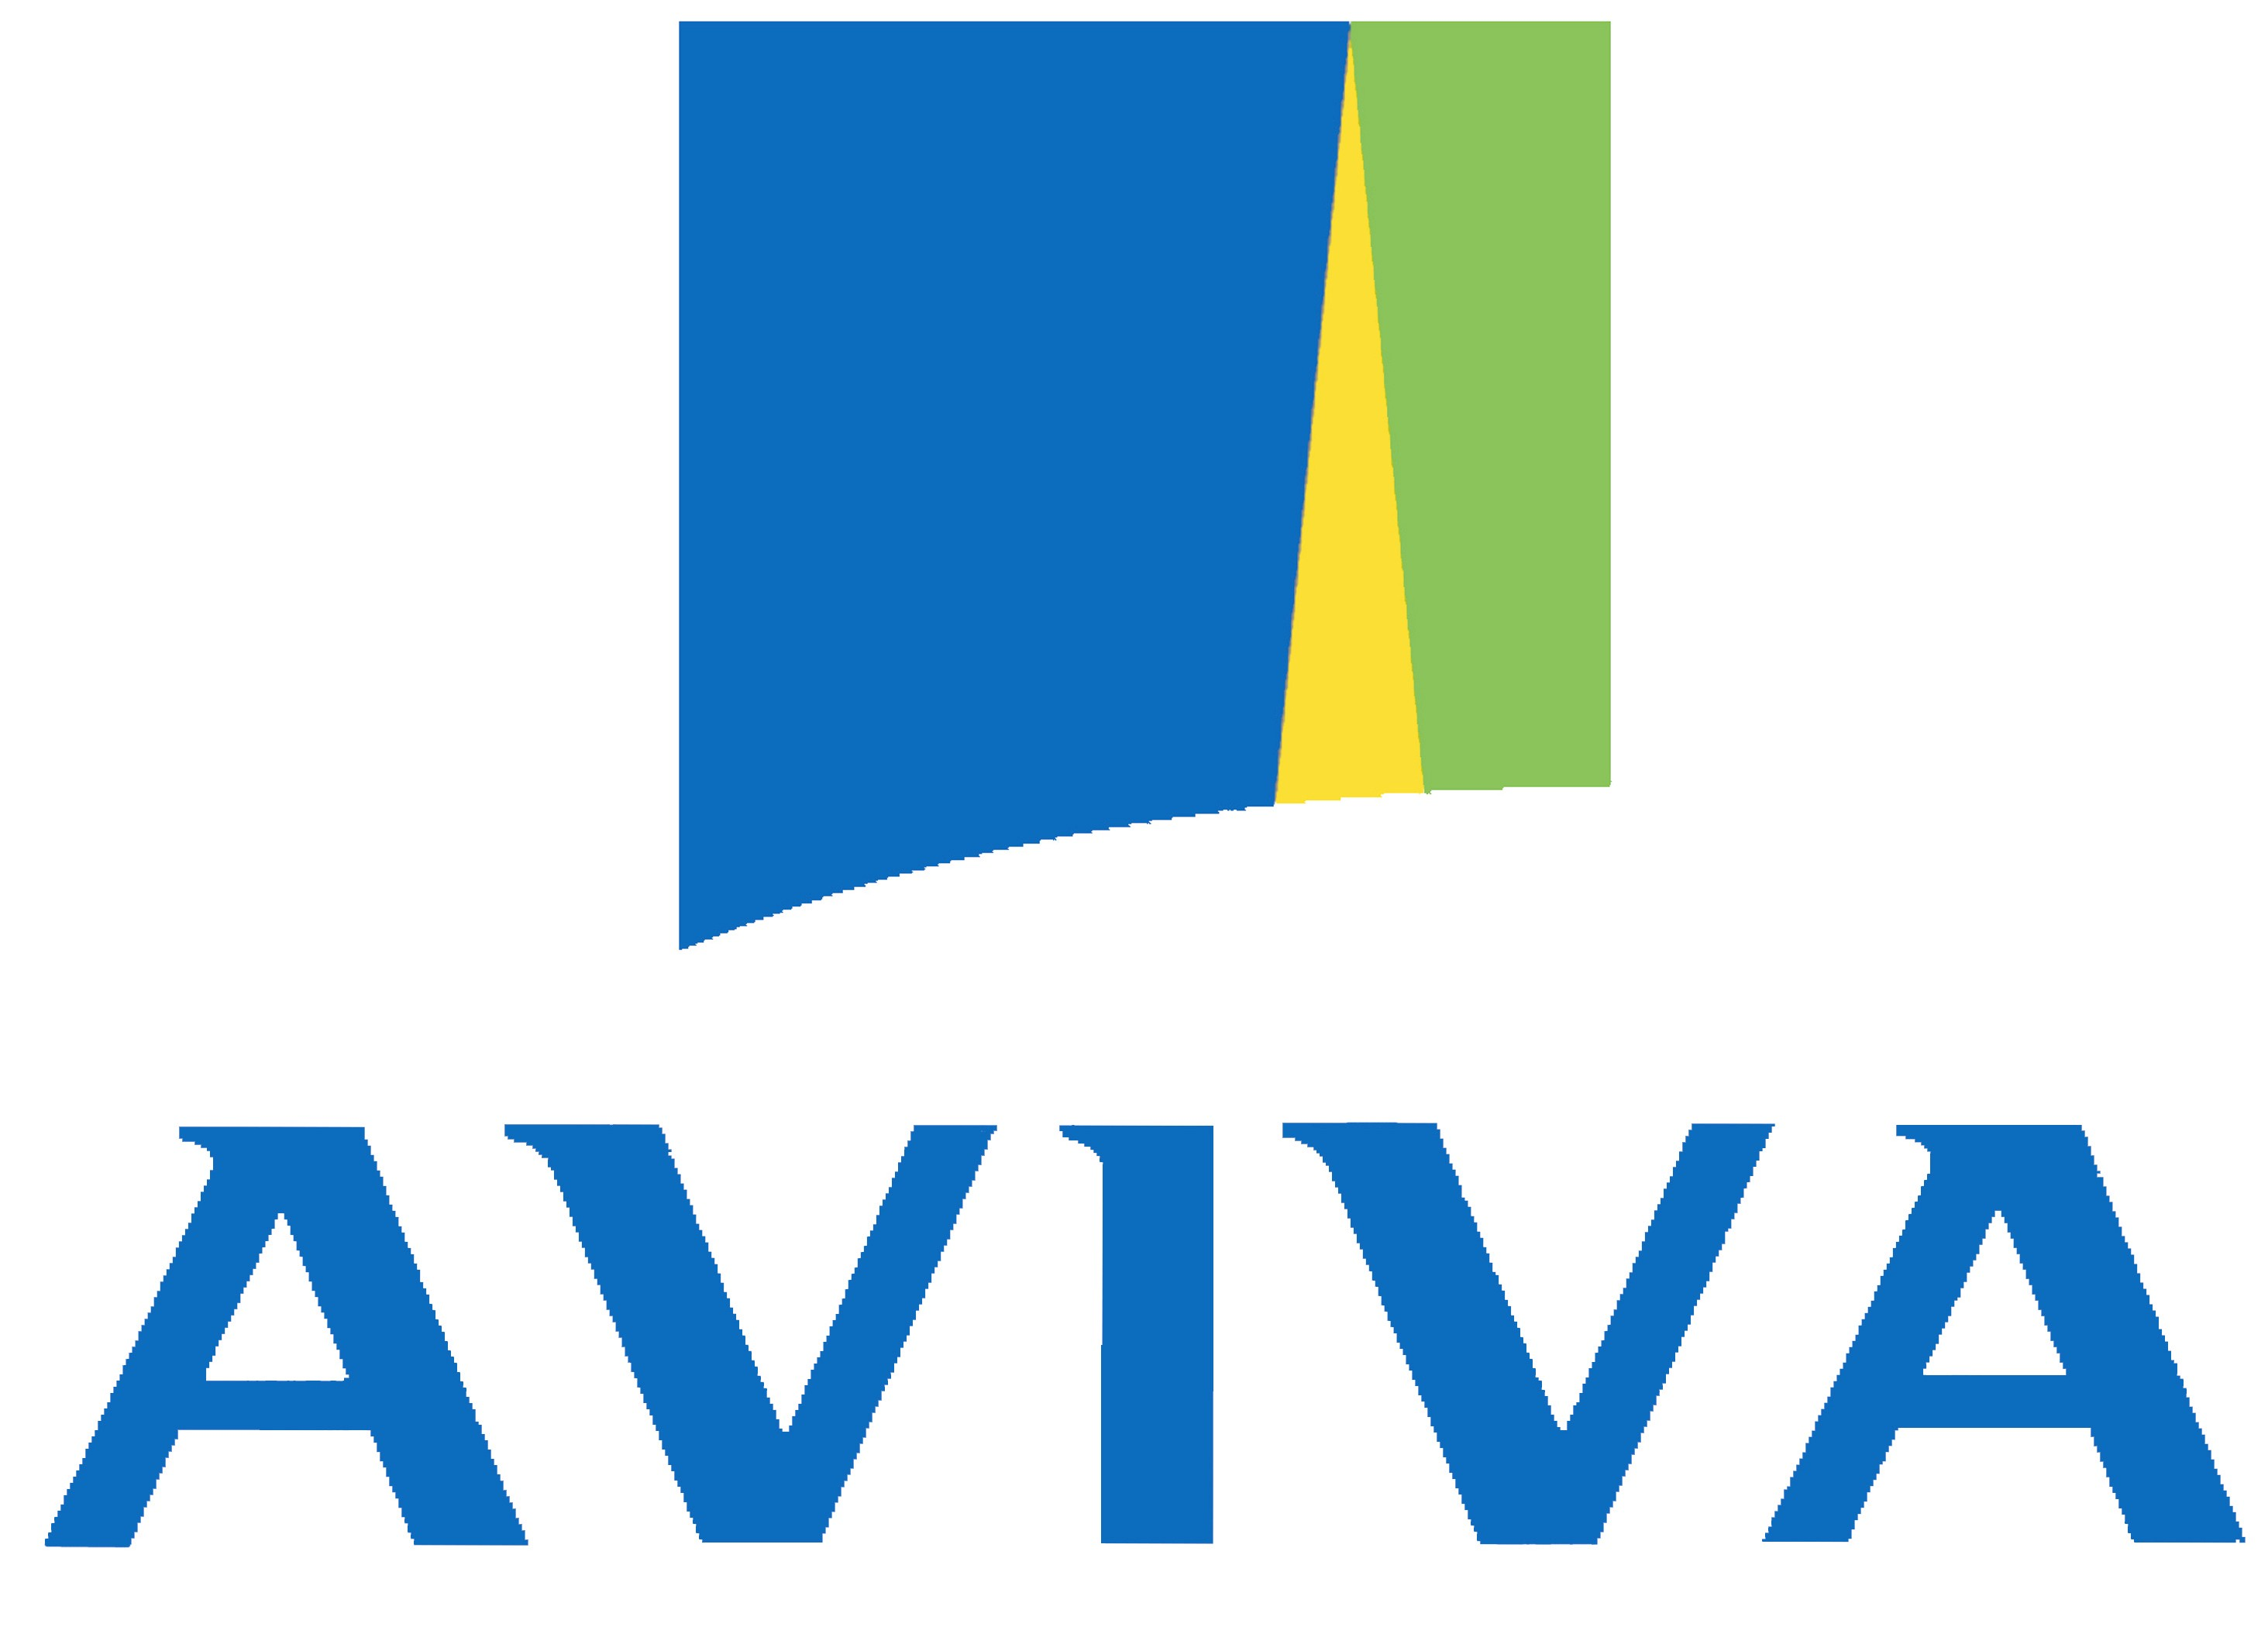 Aviva has confirmed the rejection of RSA bid